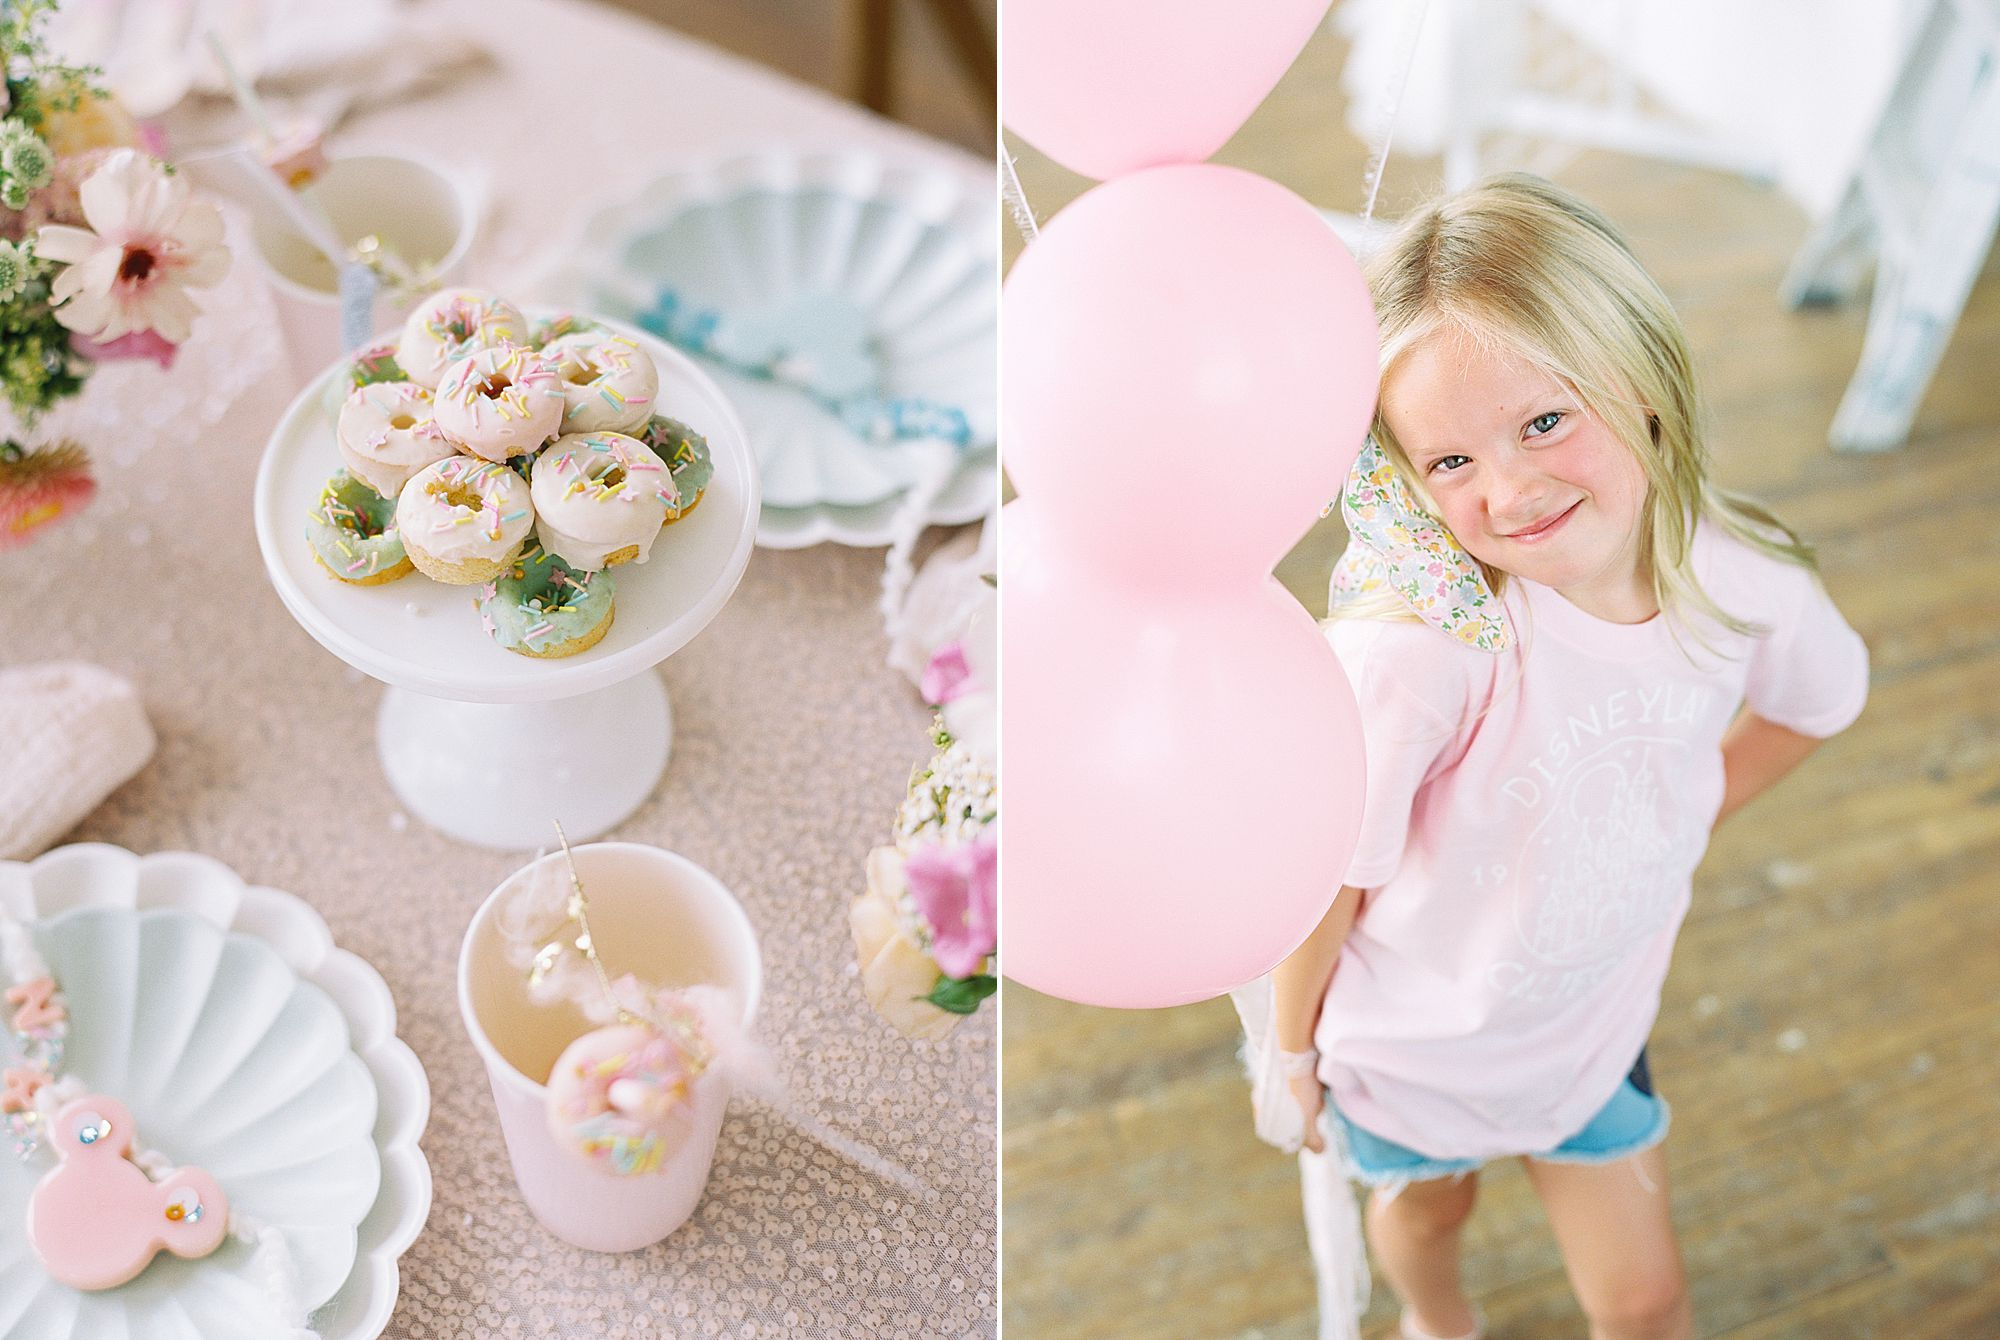 Vintage Disney Birthday Party for Princess Nora's Fourth Birthday - Featured on 100 Layer Cake - Ashley Baumgartner - Parker Grace Events_0042.jpg